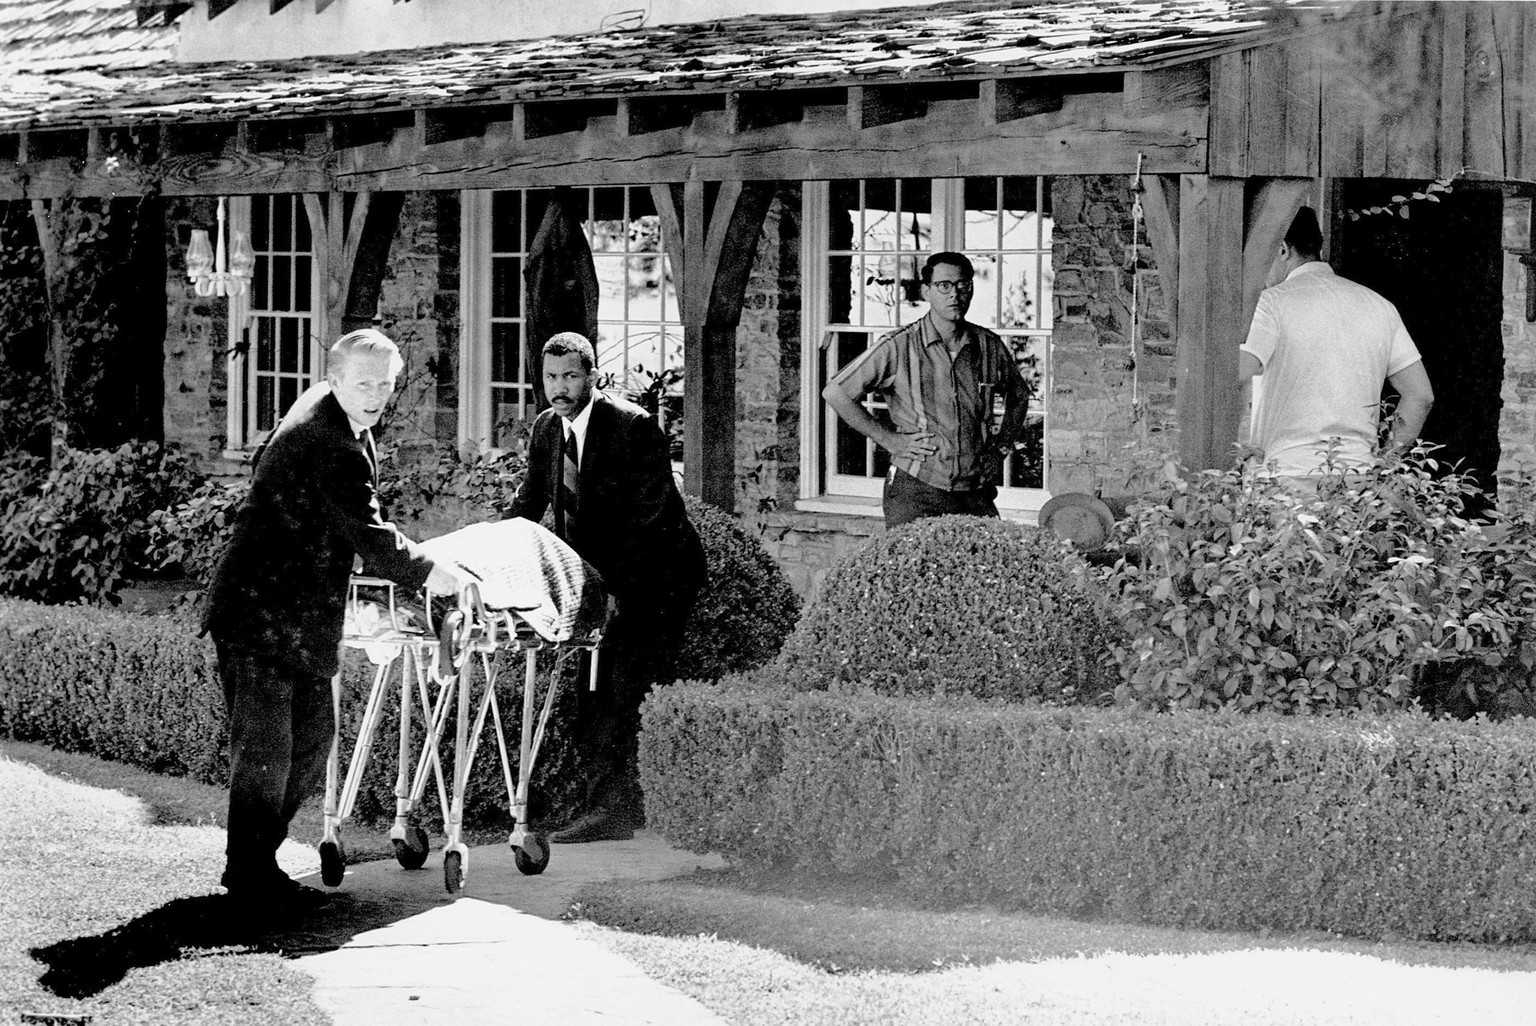 FILE - This Aug. 9, 1969 file photo shows the body of actress Sharon Tate being taken from her rented house on Cielo Drive in the Bel Air Estates area of Los Angeles. Cult leader Charles Manson, who directed his